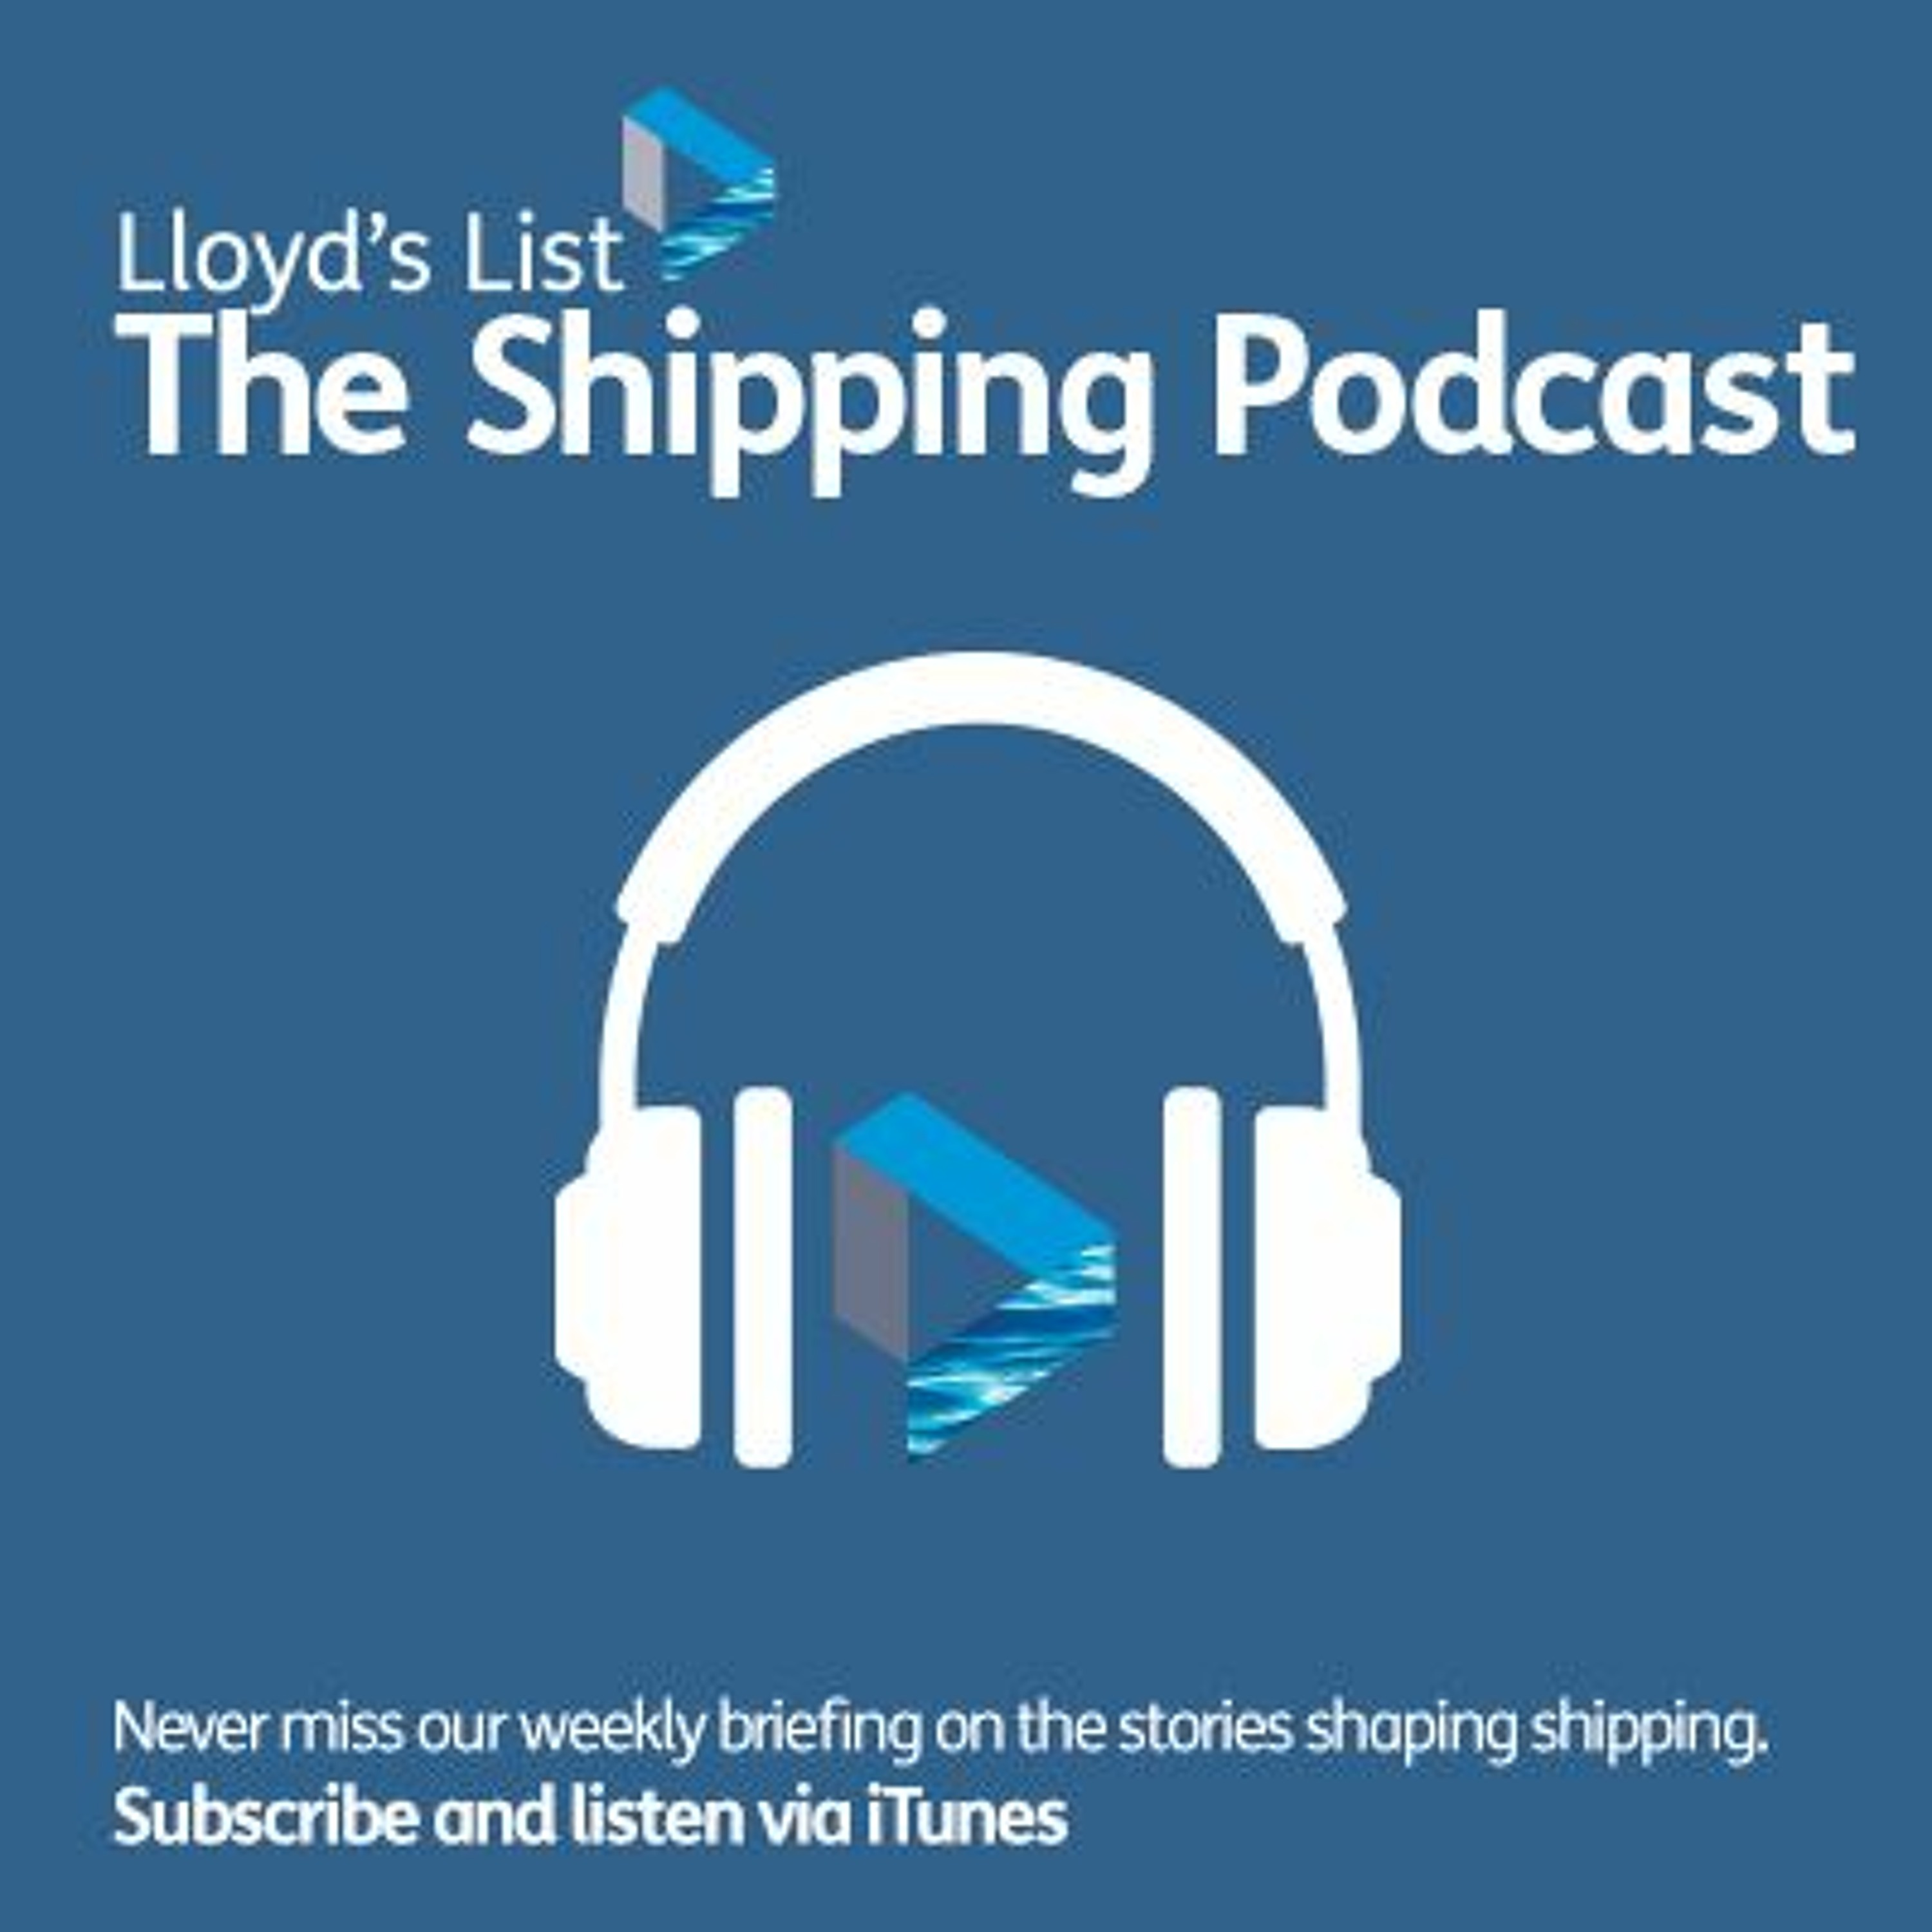 Lloyd's List: The Shipping Podcast